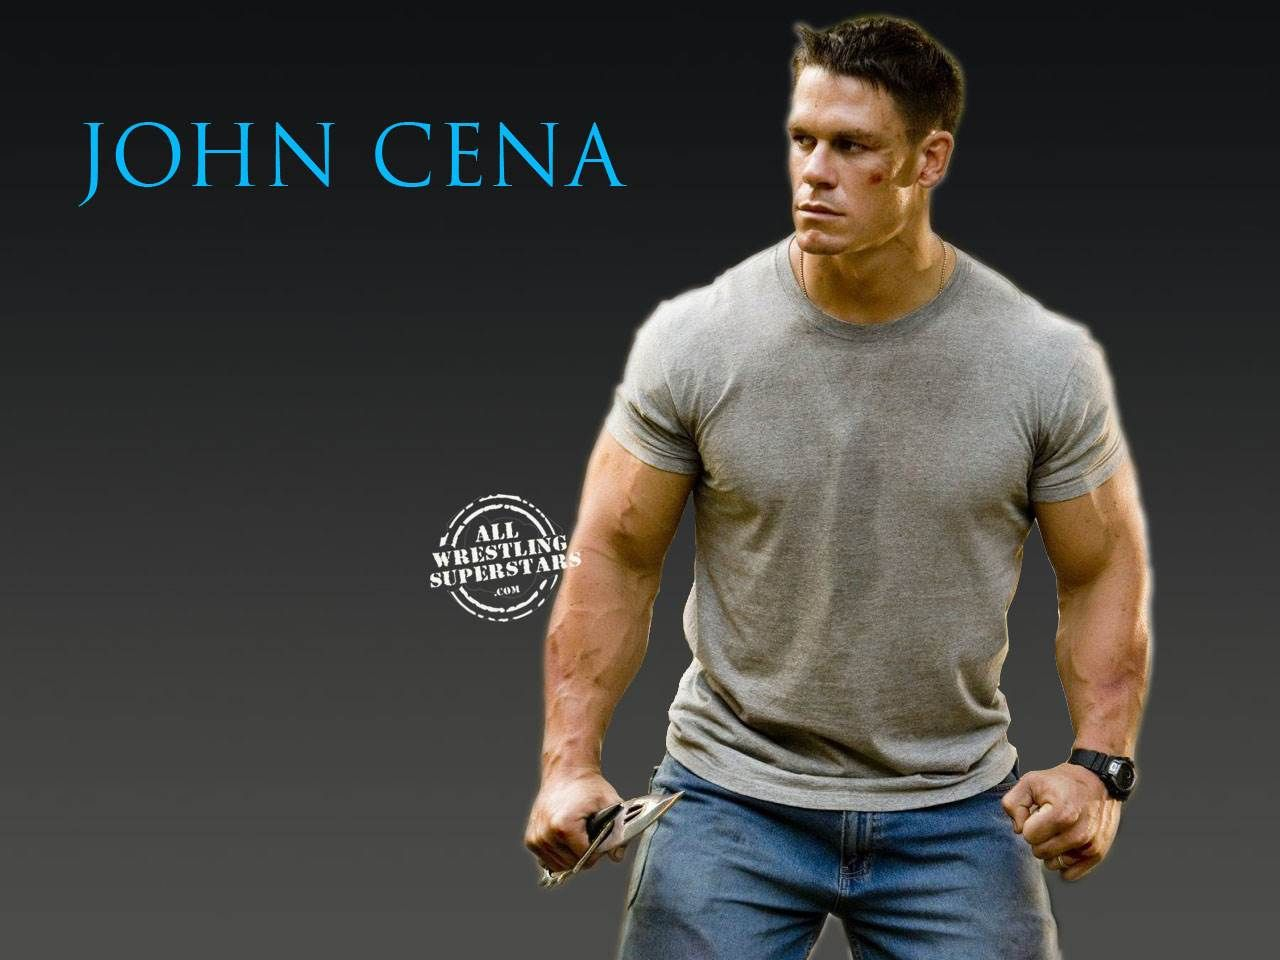 free download wwe john cena hd wallpapers 1280×960 john cena